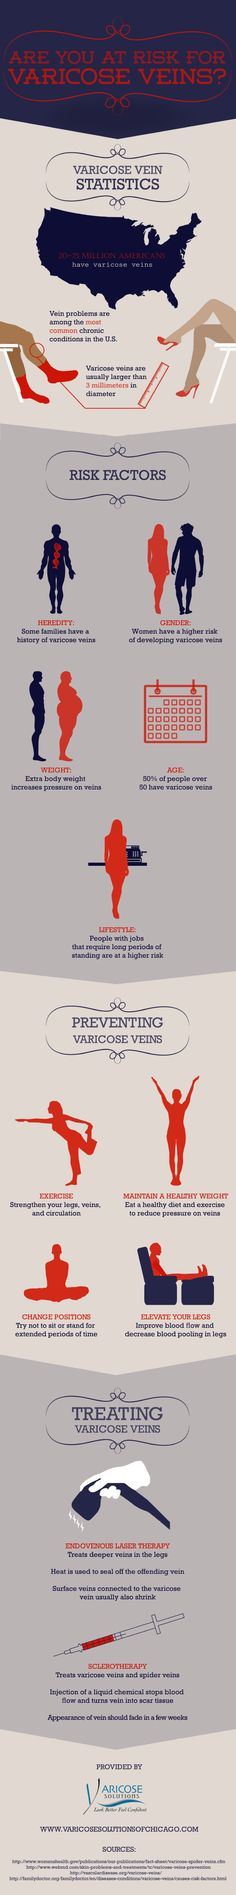 Some families have a history of varicose veins. Women are more likely to develop this vein disorder than men. Extra body weight and standing for long periods of time are also risk factors. Learn more in this infographic from a vein clinic in Chicago.